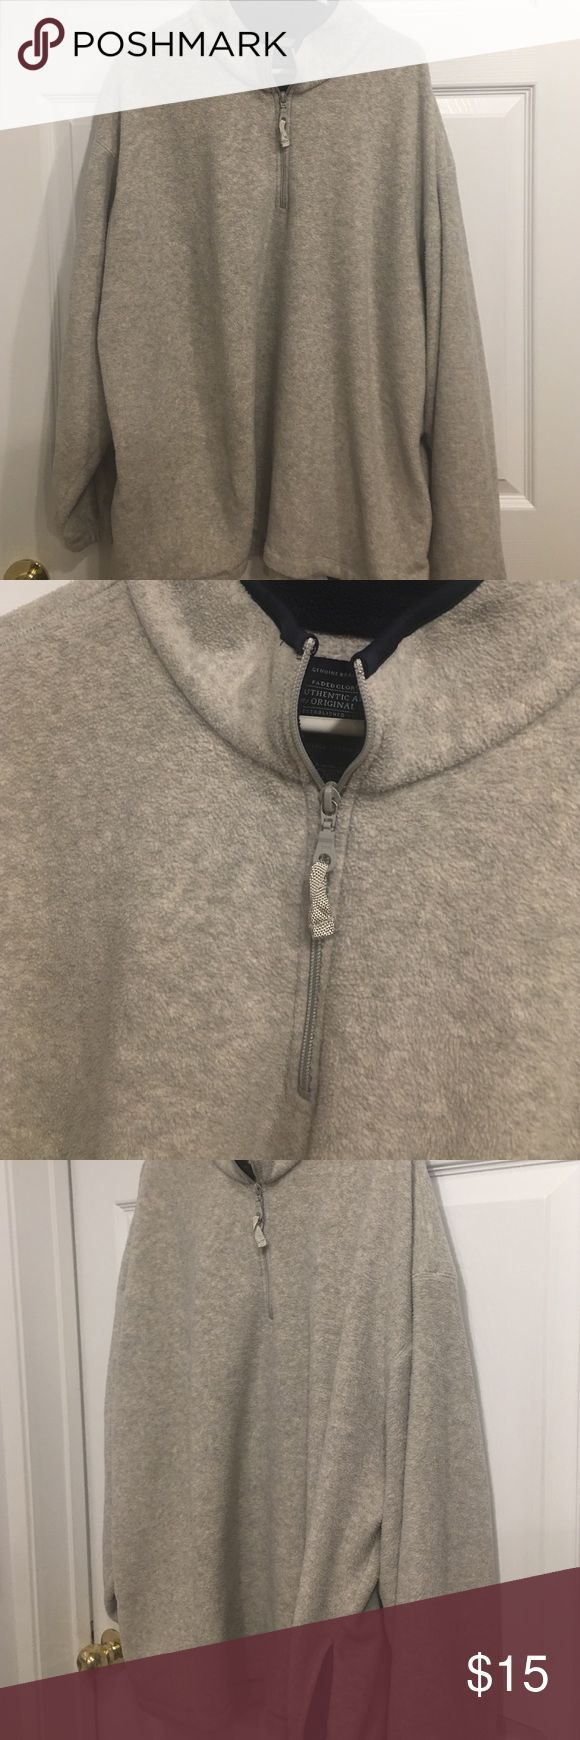 Men's Faded Glory Warm Pull Over XL Men's faded Glory warm soft comfy pull over. Zipper at top. Fleece size XL. Worn once excellent condition. Side pockets Faded Glory Shirts